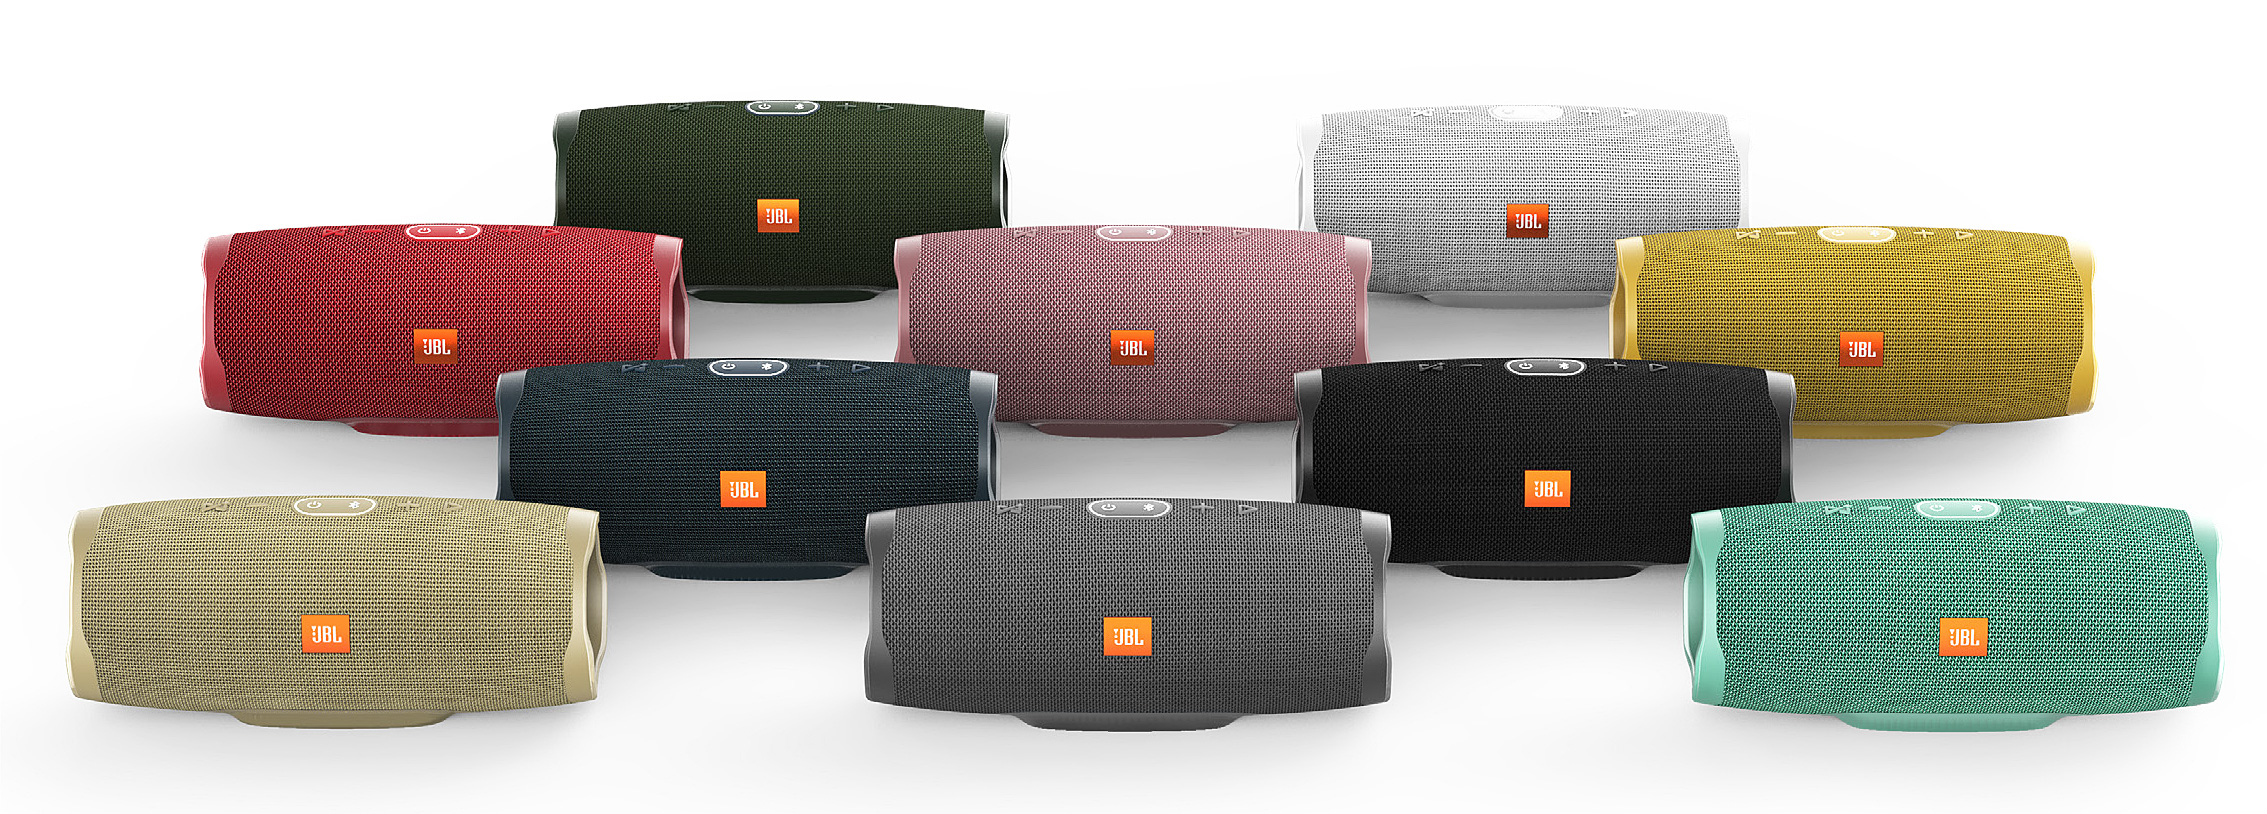 JBL Charge 4 Review | electromodo